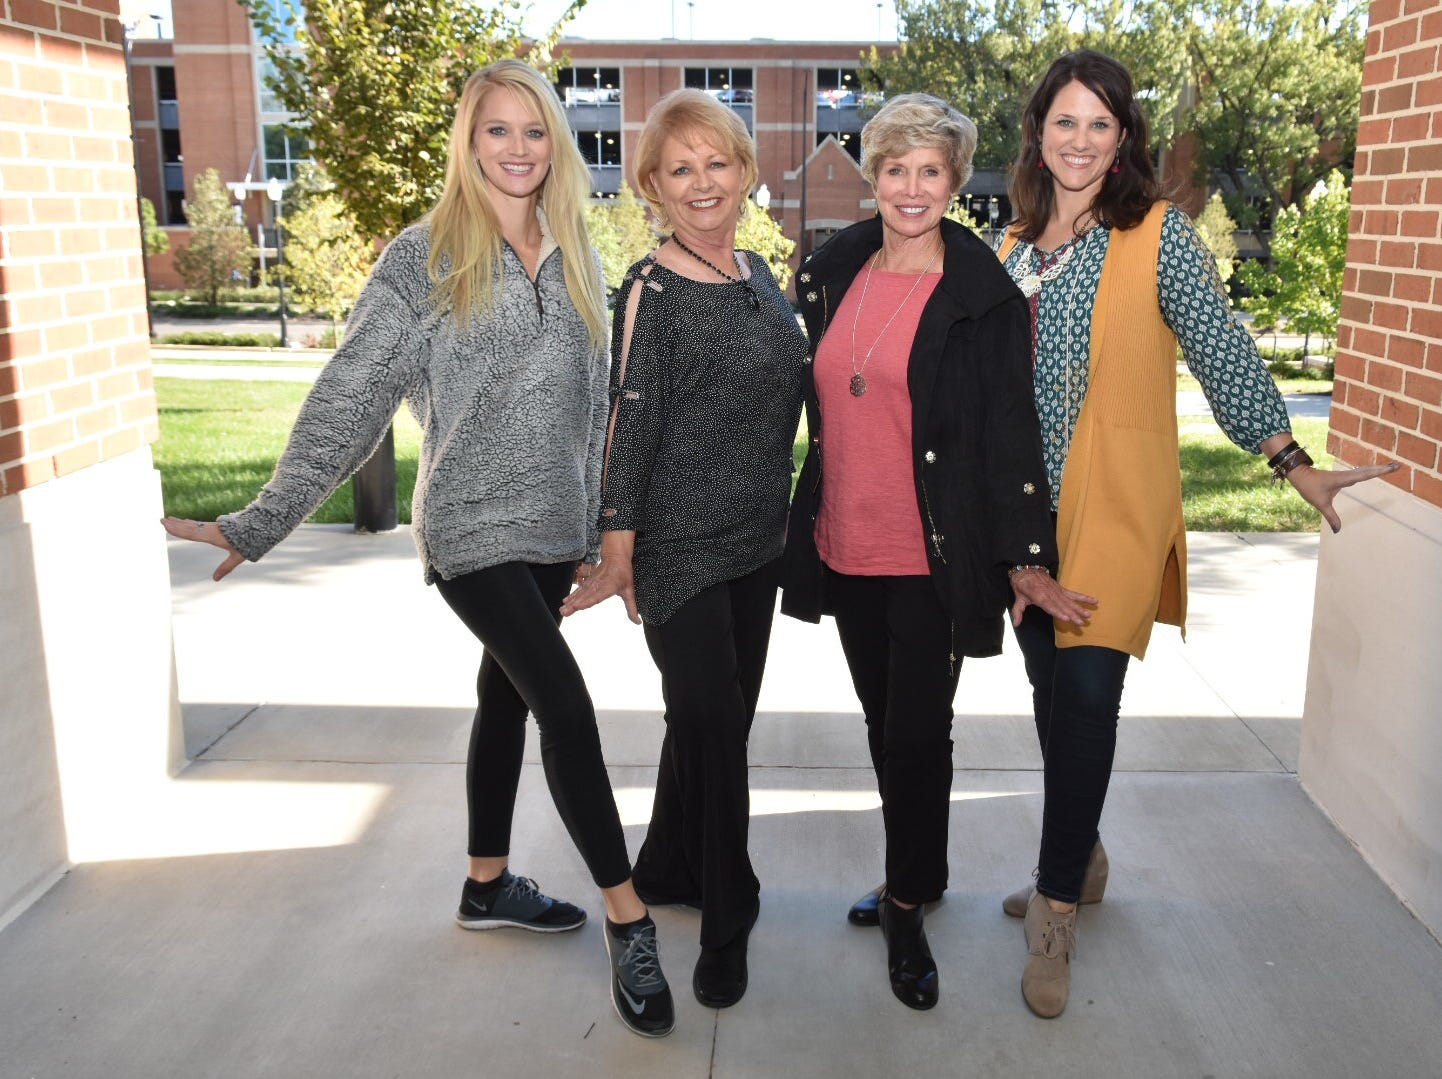 Former UT majorettes Lindsey Cupp Maples (2004-2008), Kathy McCarrell Smith (1970-1976), Judy Barton Cox (1962-1965) and Carrie DeLozier Creswell (1997-2000). All four are former head majorettes.